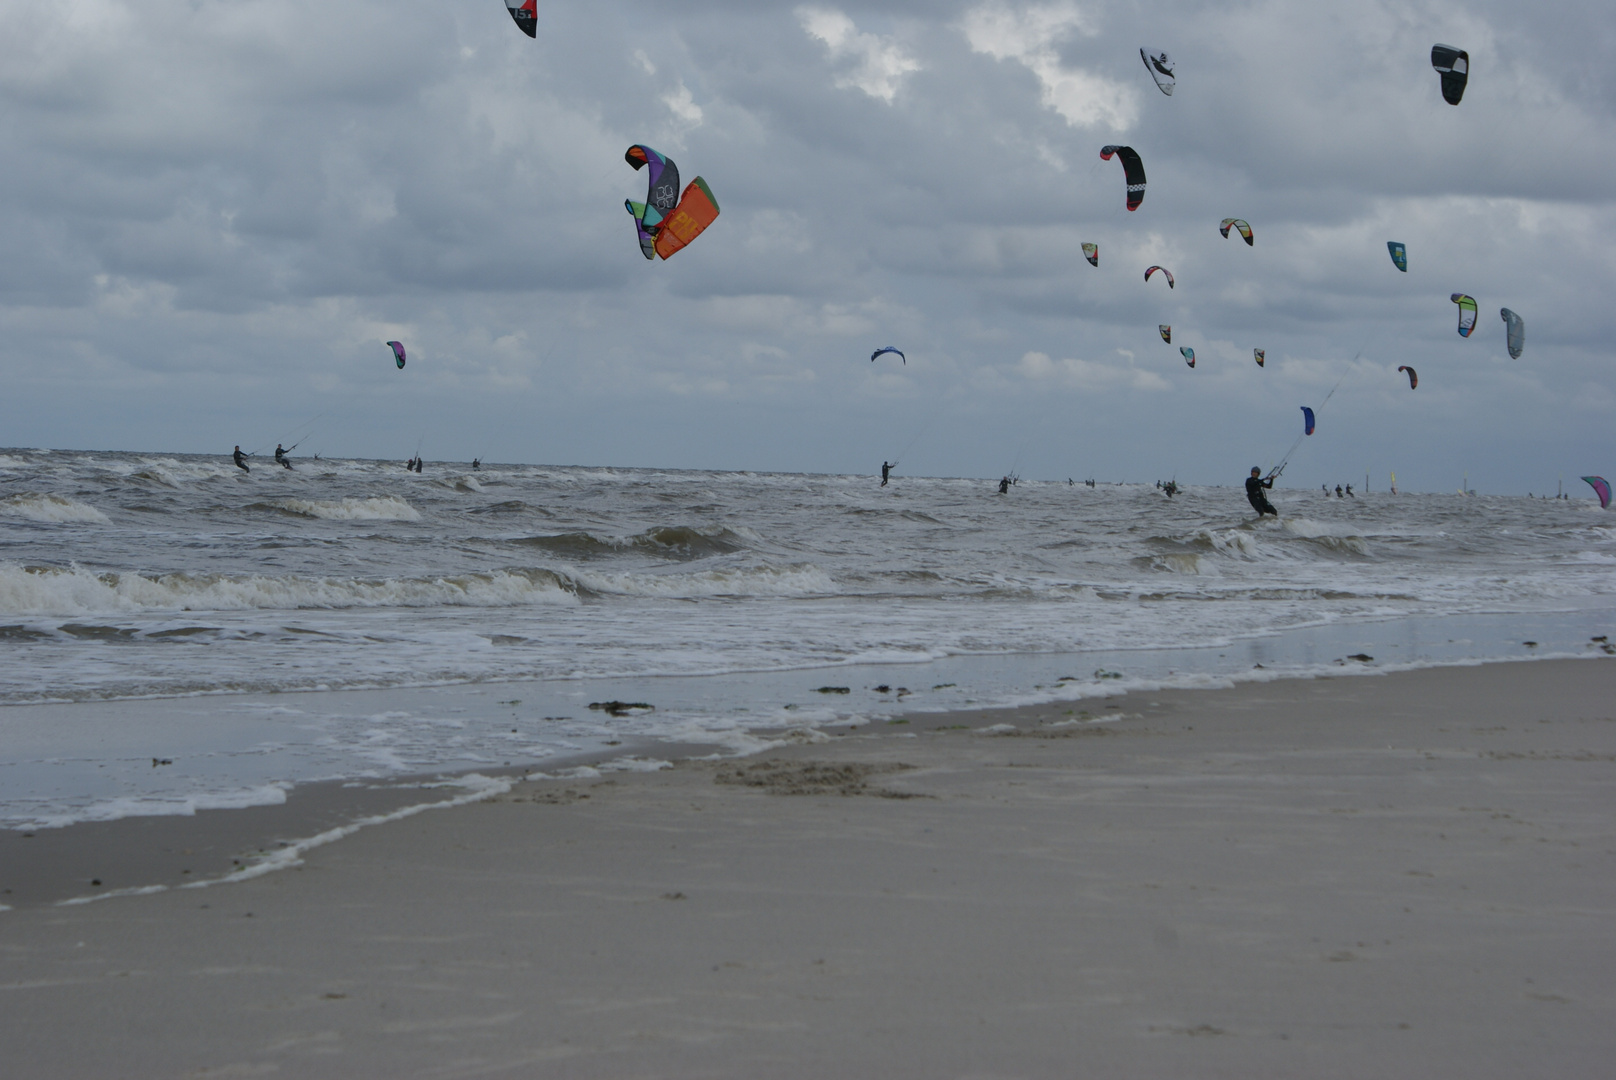 Kite-Surfer 3